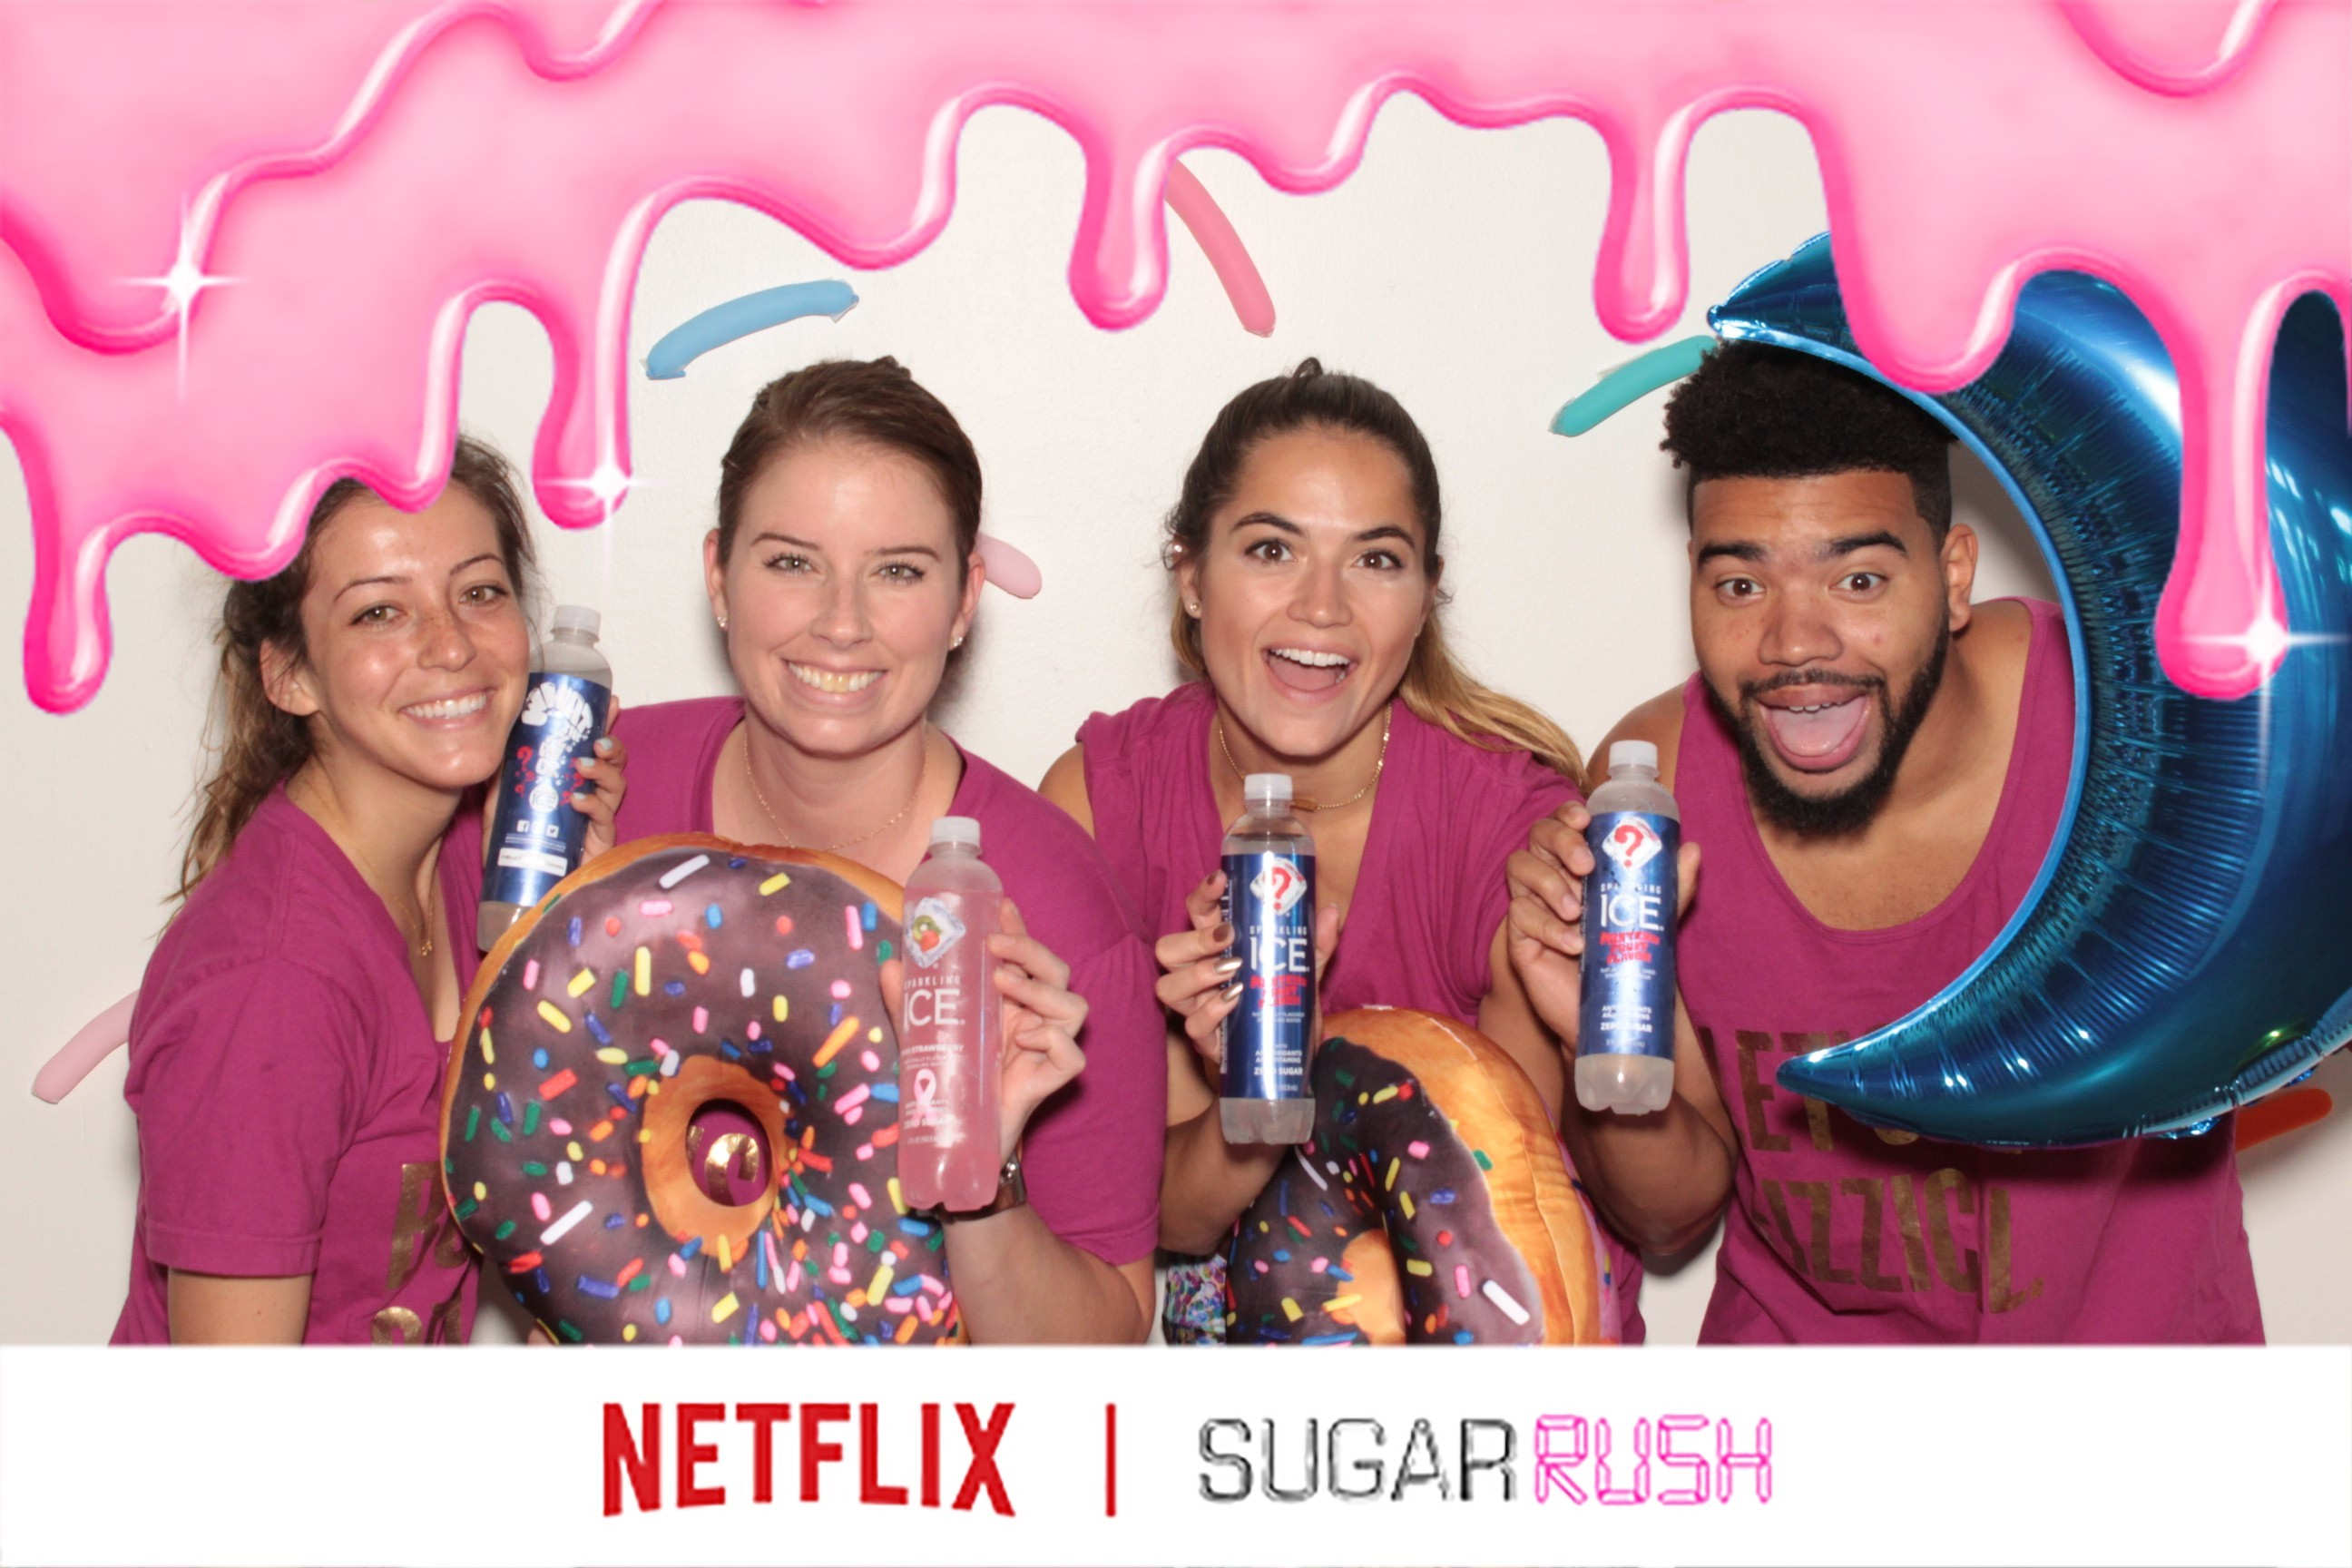 a photo booth photo from the netflix sugar rush photo gif booth by maple leaf photo booths